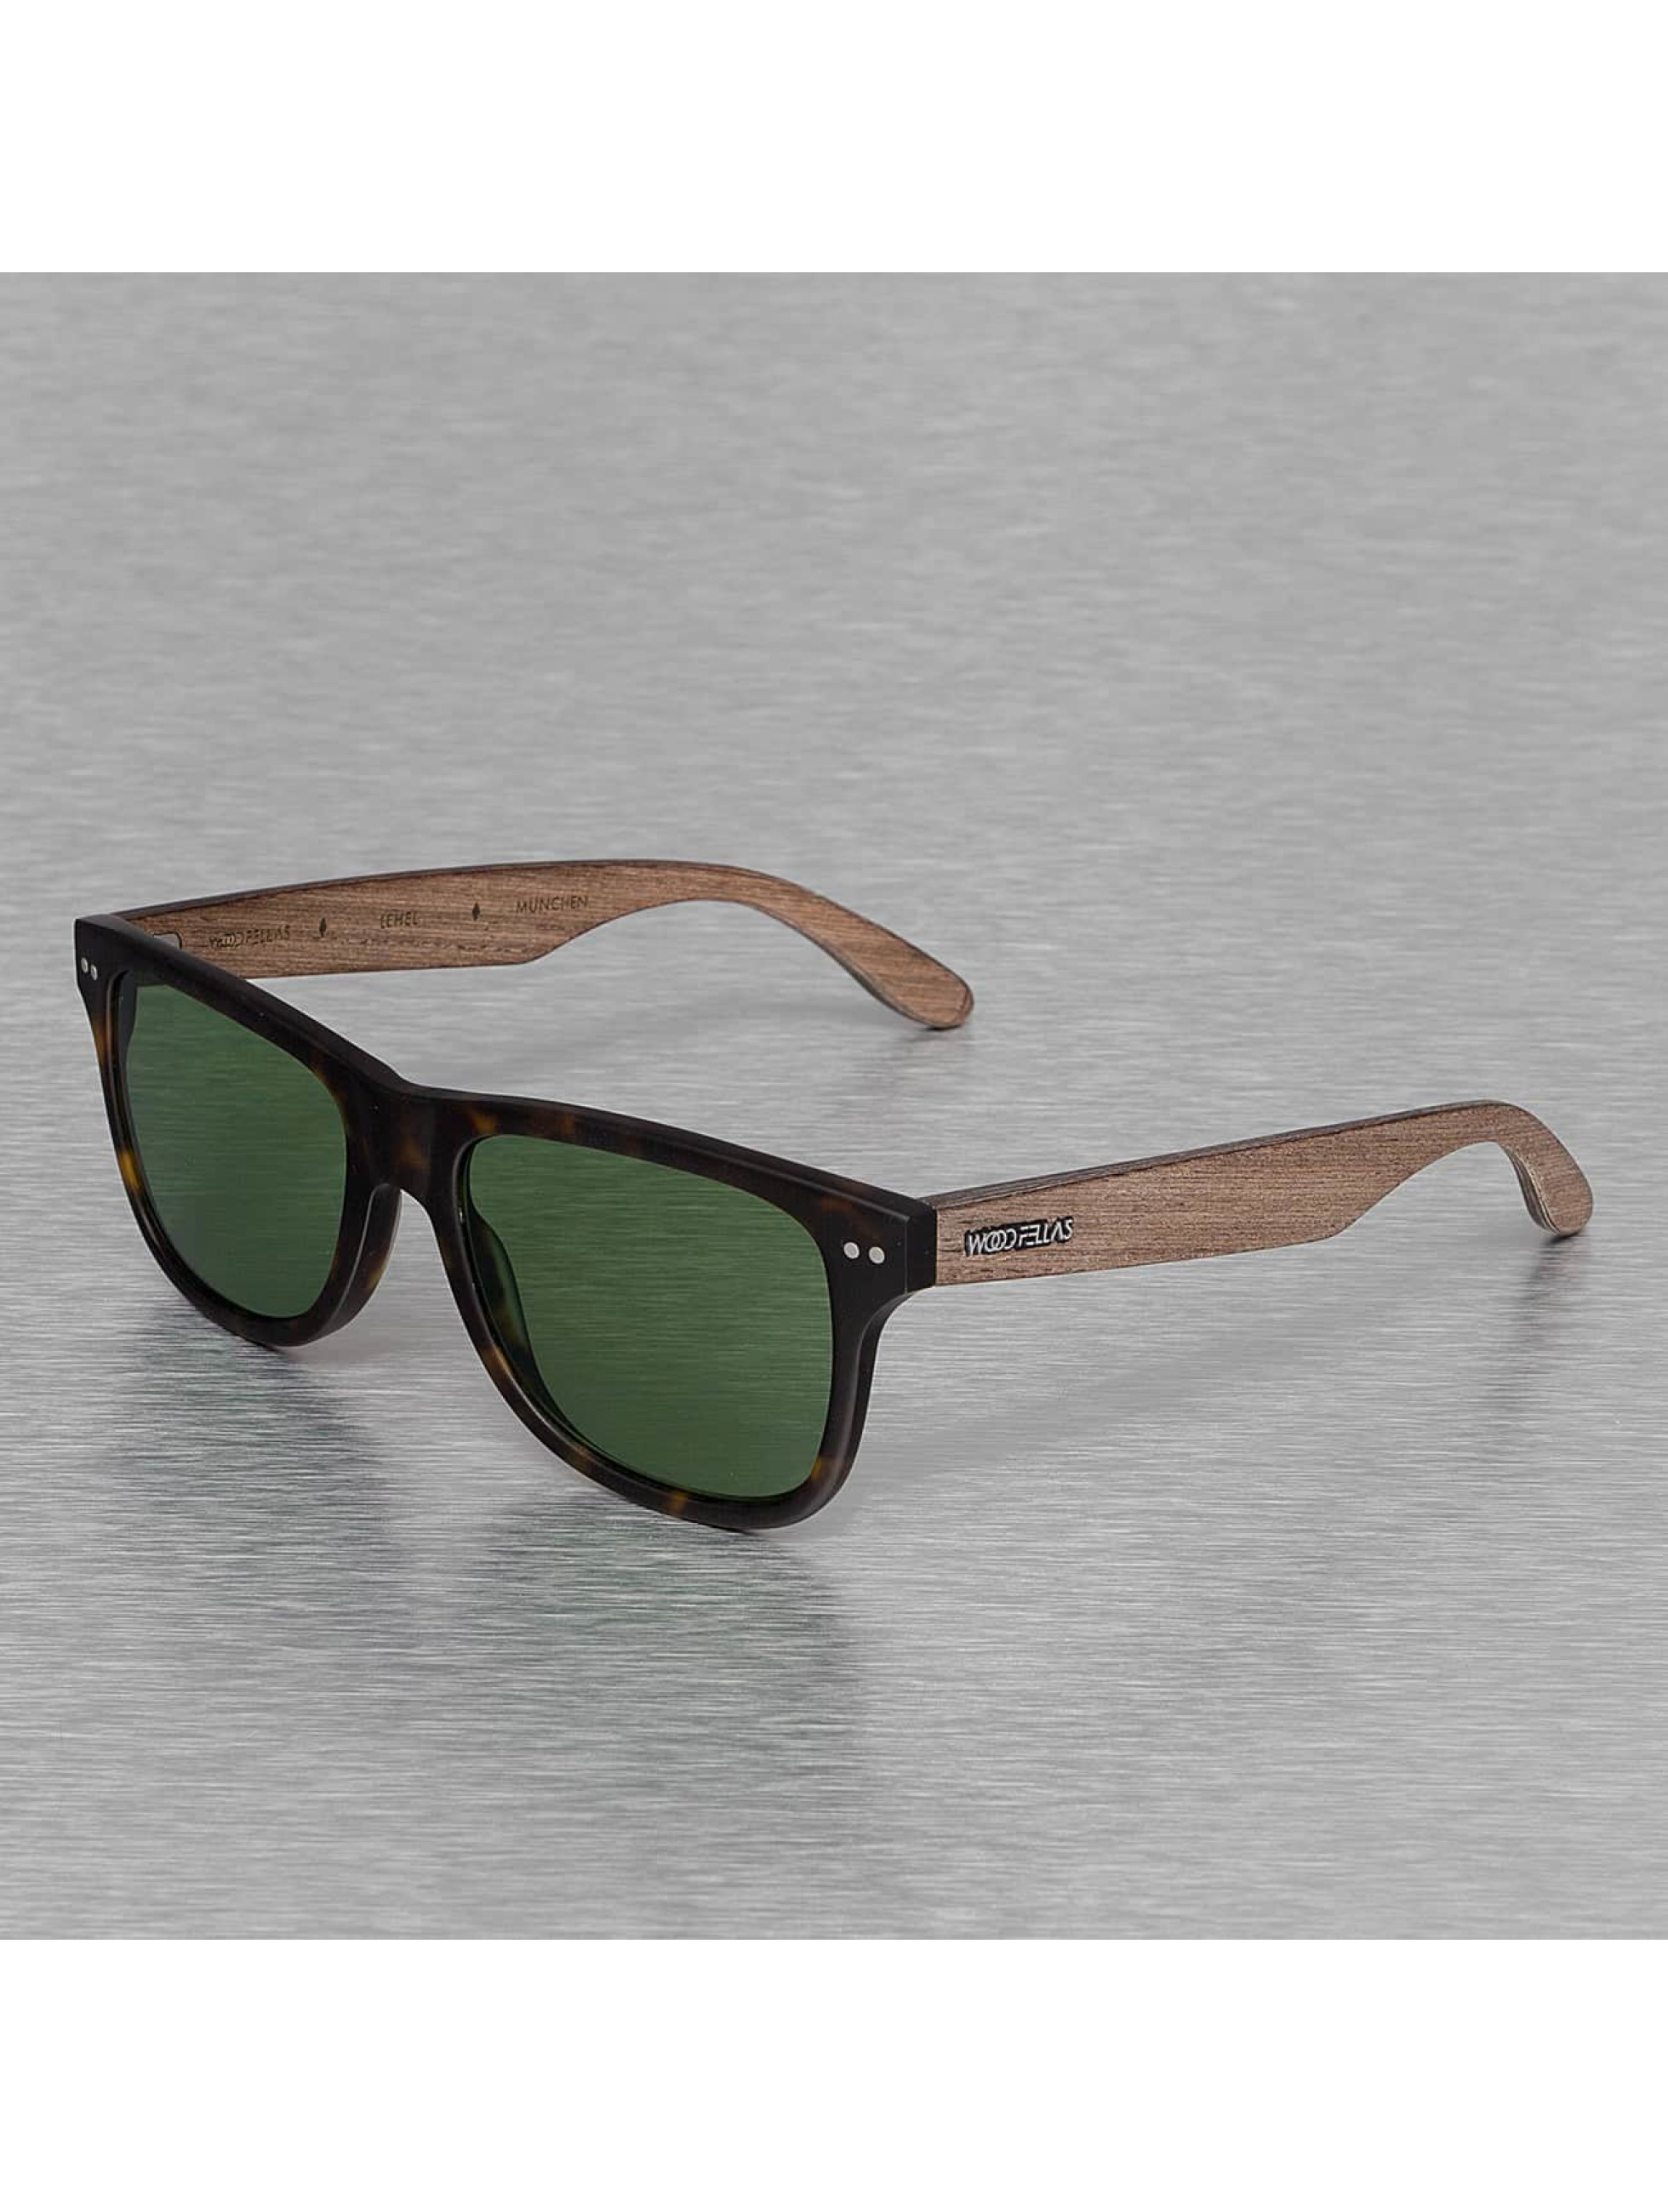 Wood Fellas Eyewear Männer,Frauen Sonnenbrille Eyewear Lehel Polarized Mirror in braun